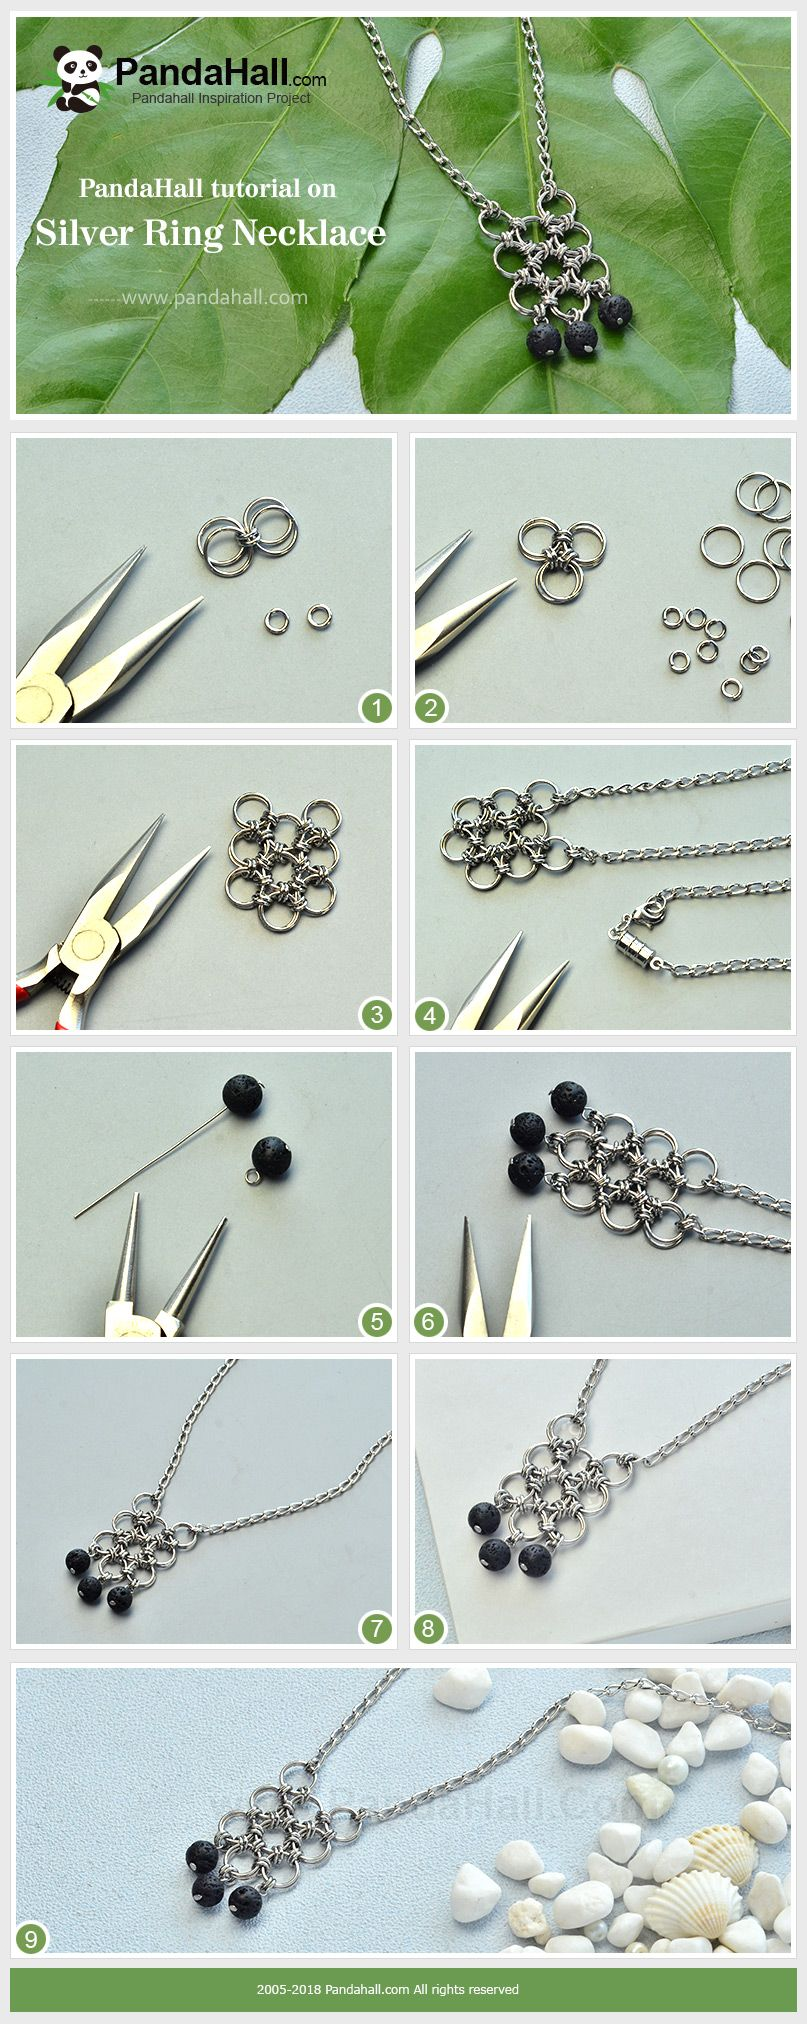 Beebeecraft tutorial on Silver Ring #Necklace | Beads | Pinterest ...